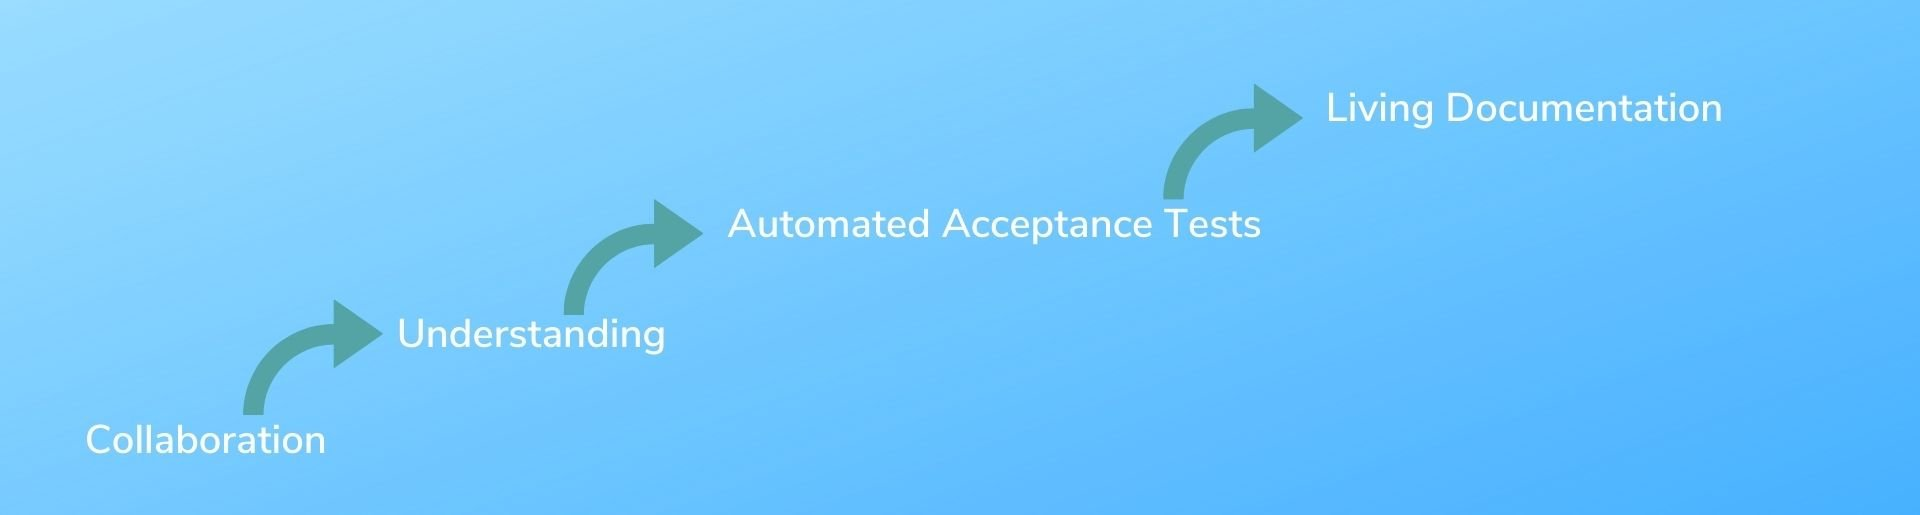 Collaboration _ understanding _ automated acceptance tests _ living documentation